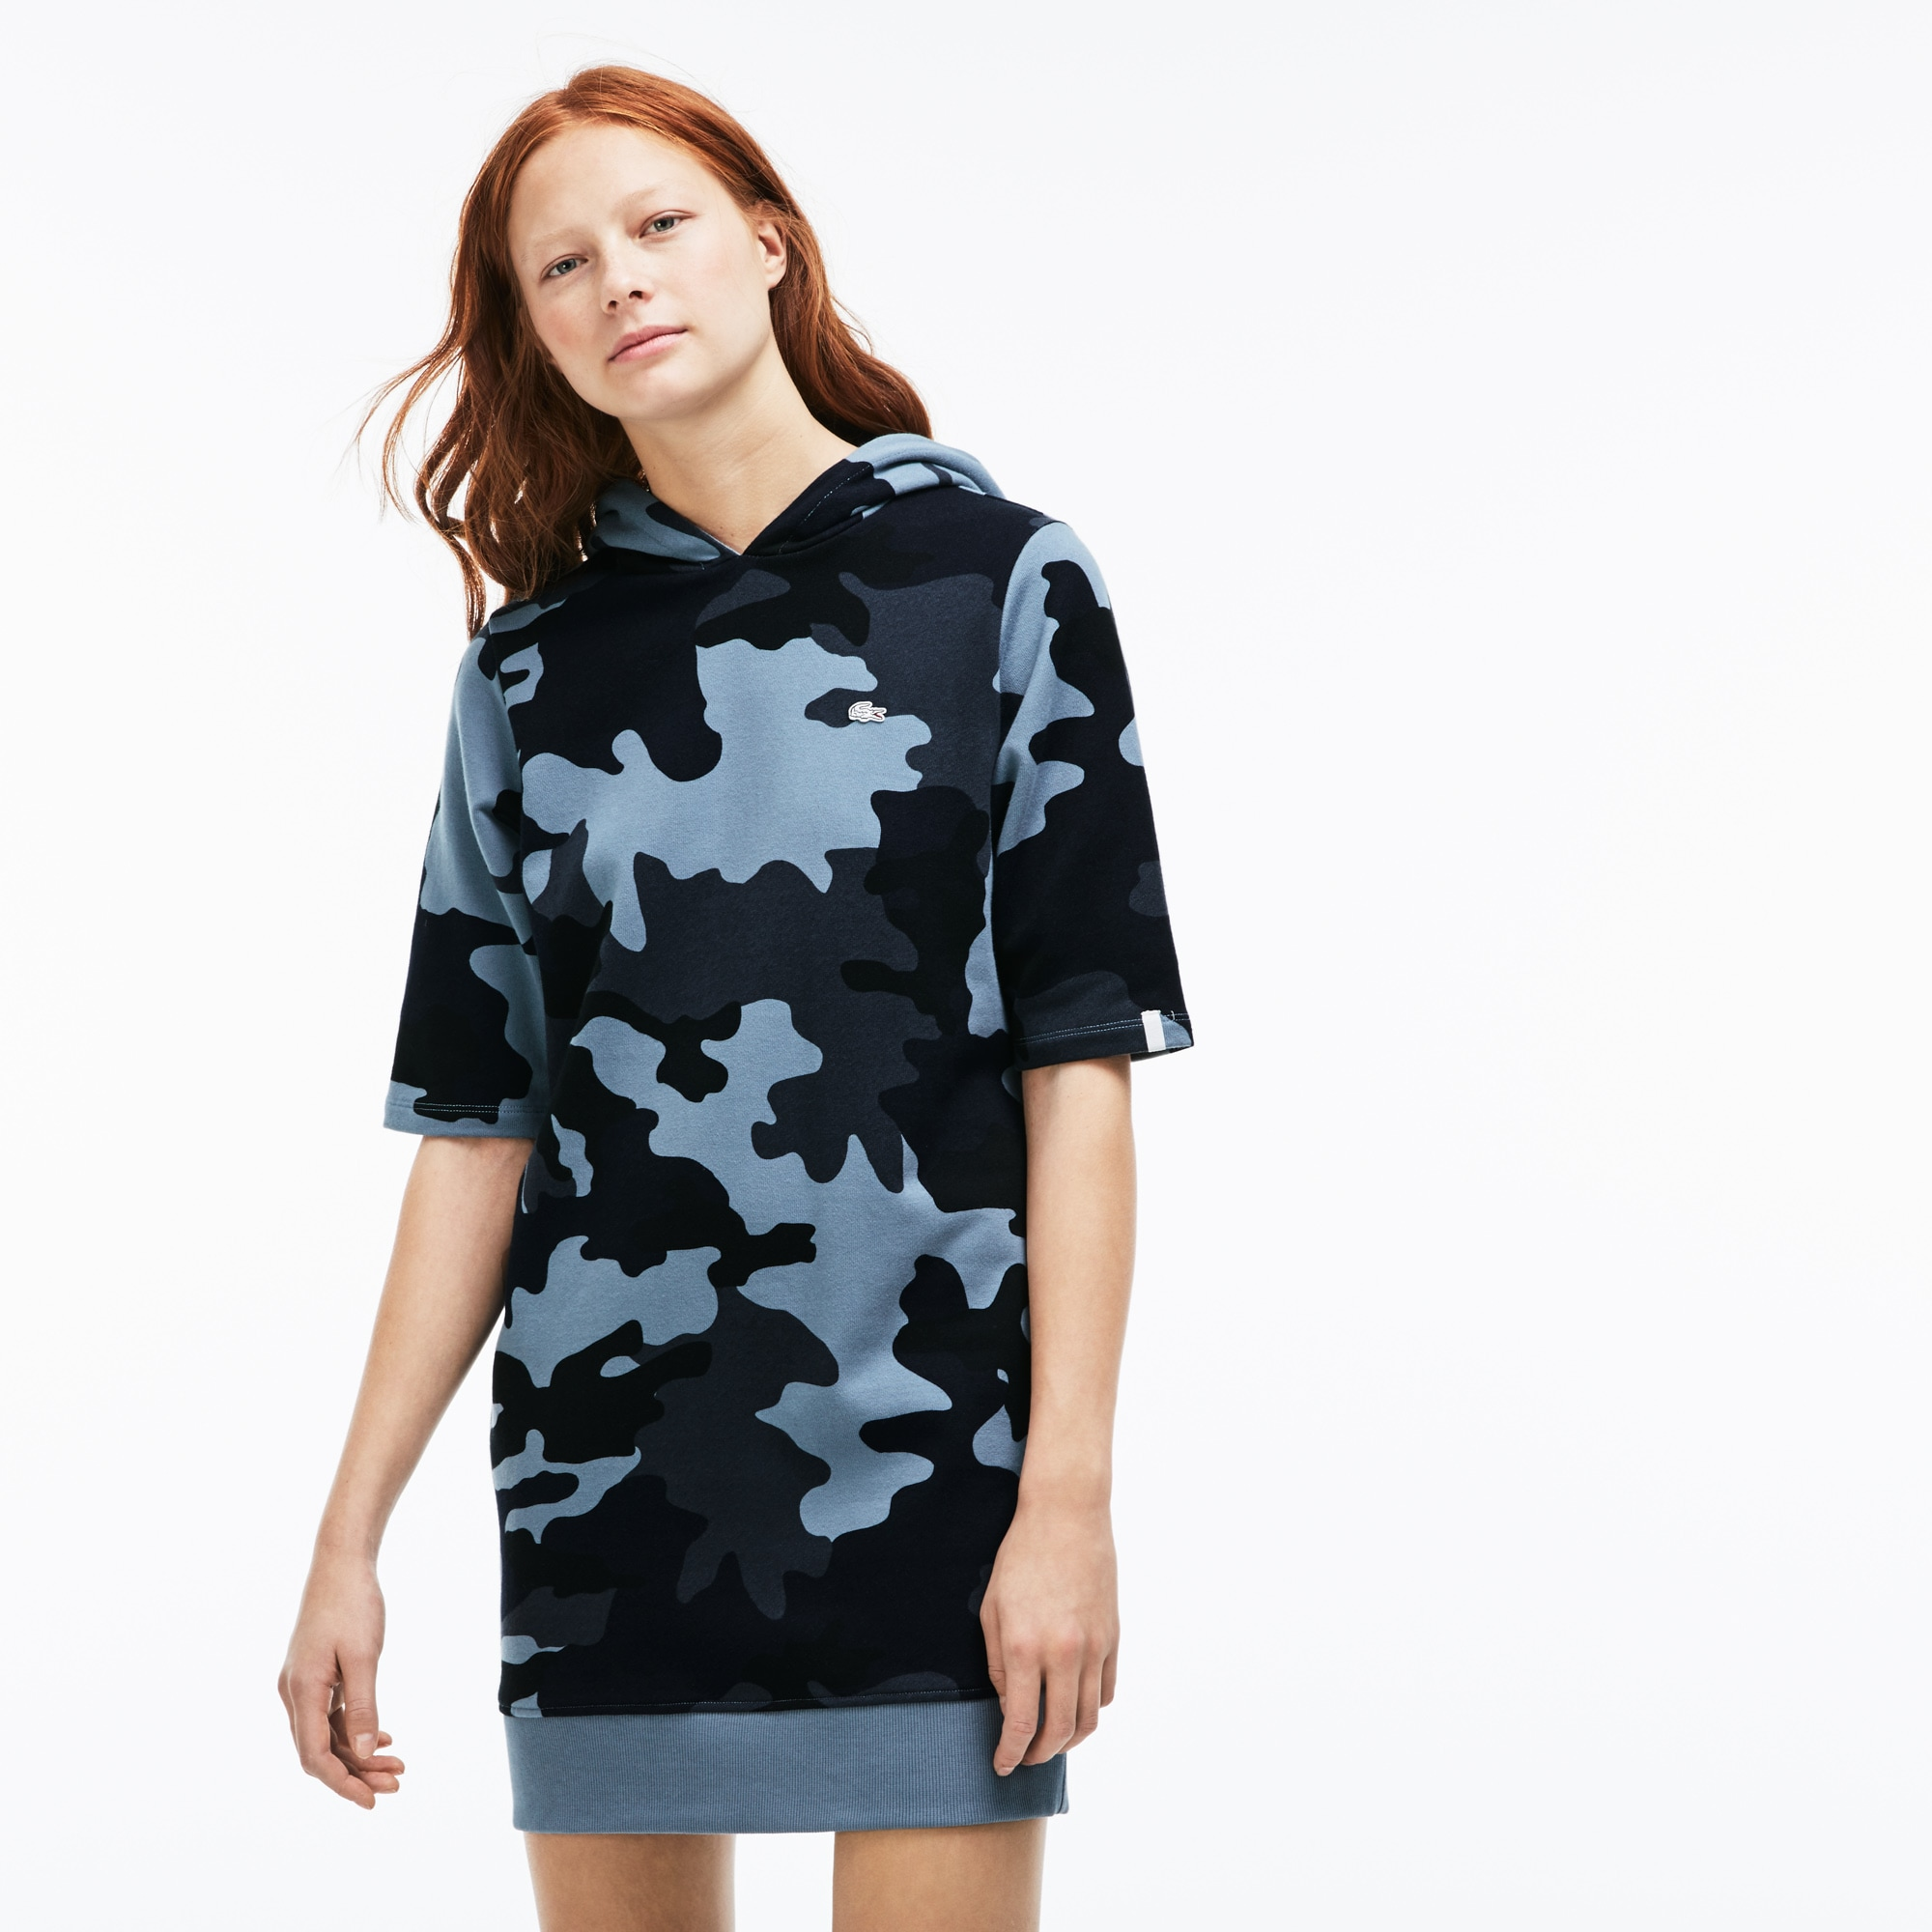 Women's Lacoste LIVE Hooded Camouflage Fleece Sweatshirt Dress